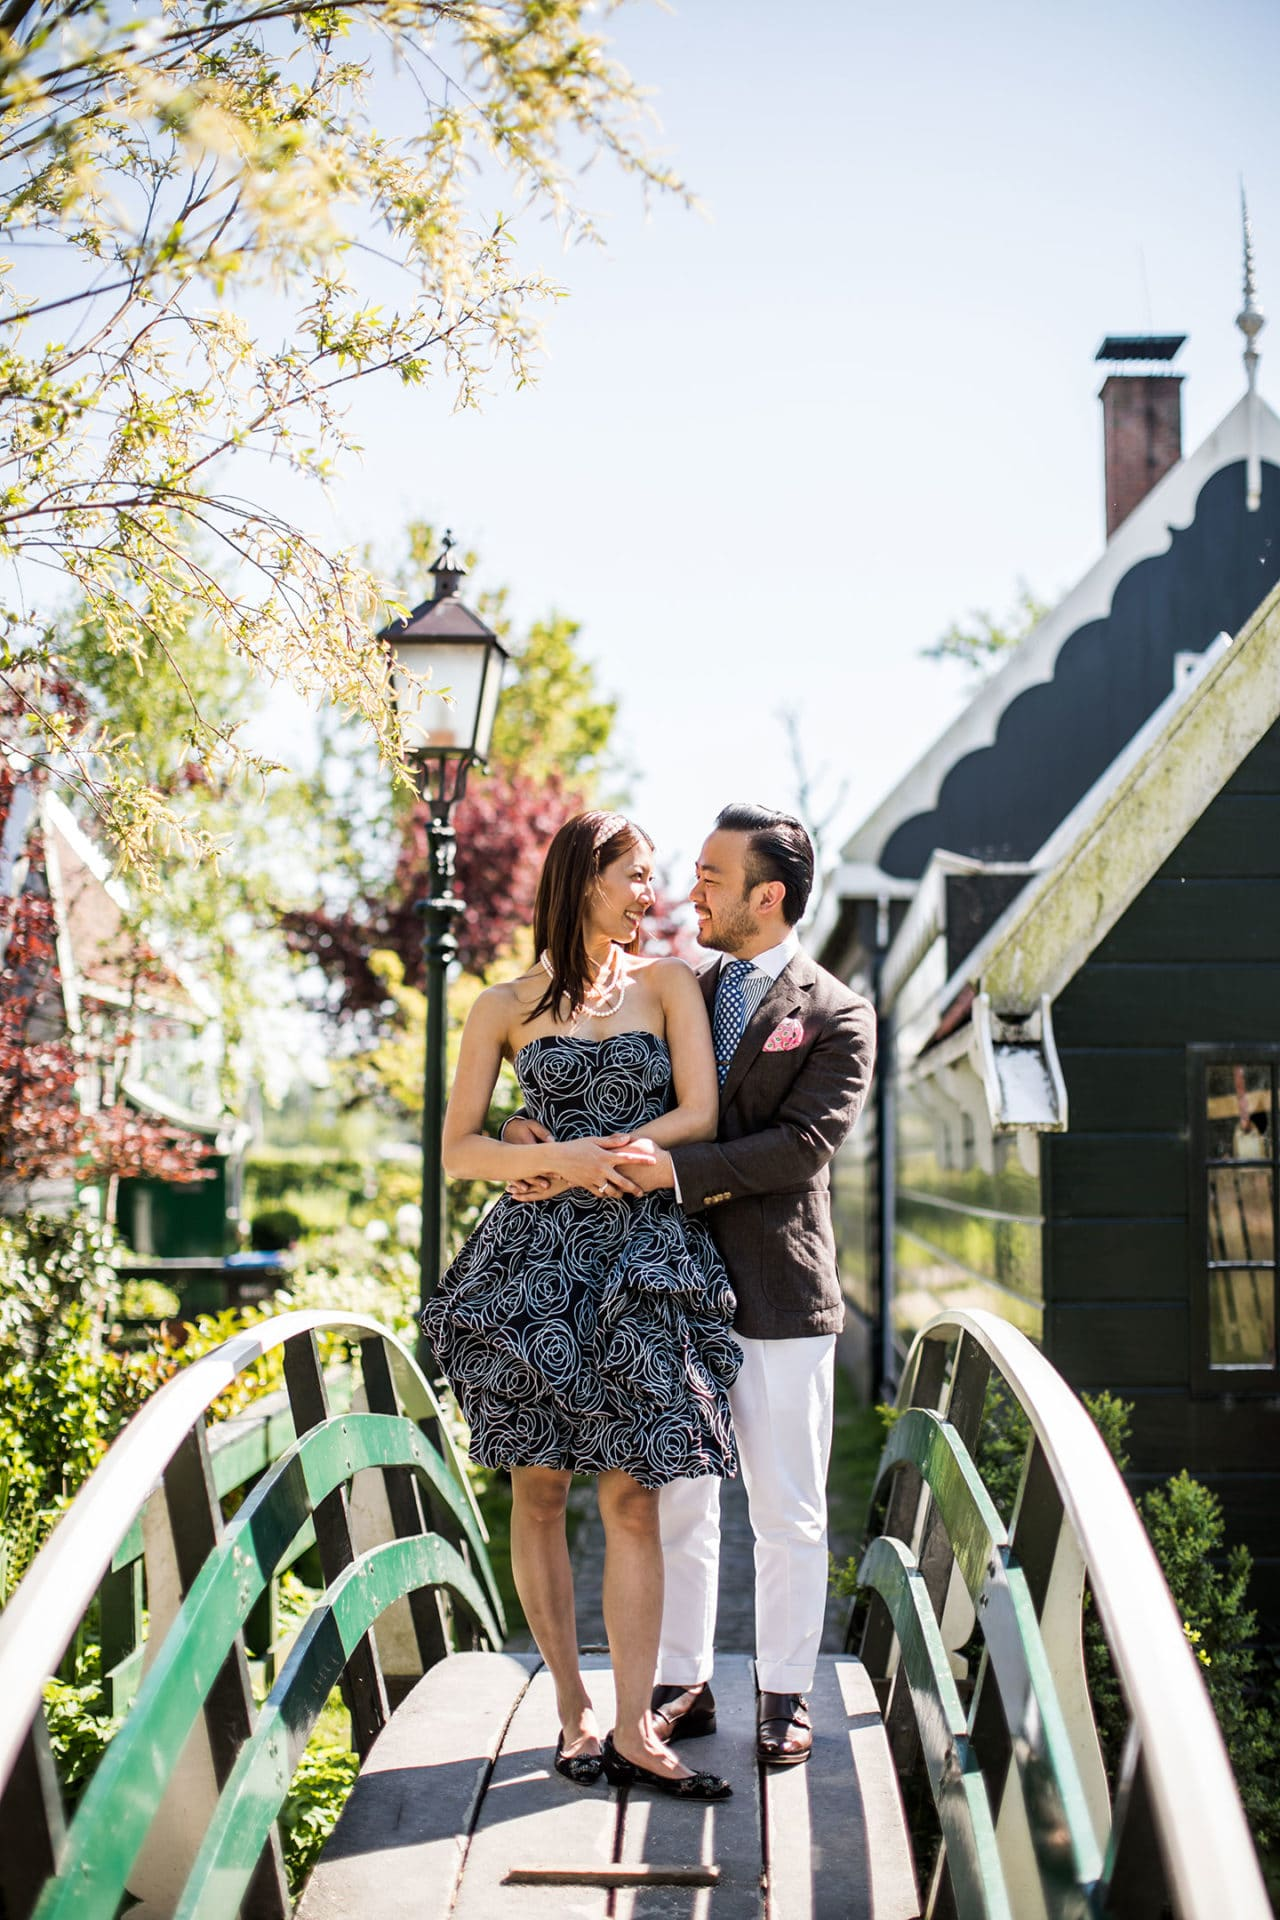 Prewedding photography windmill village Holland